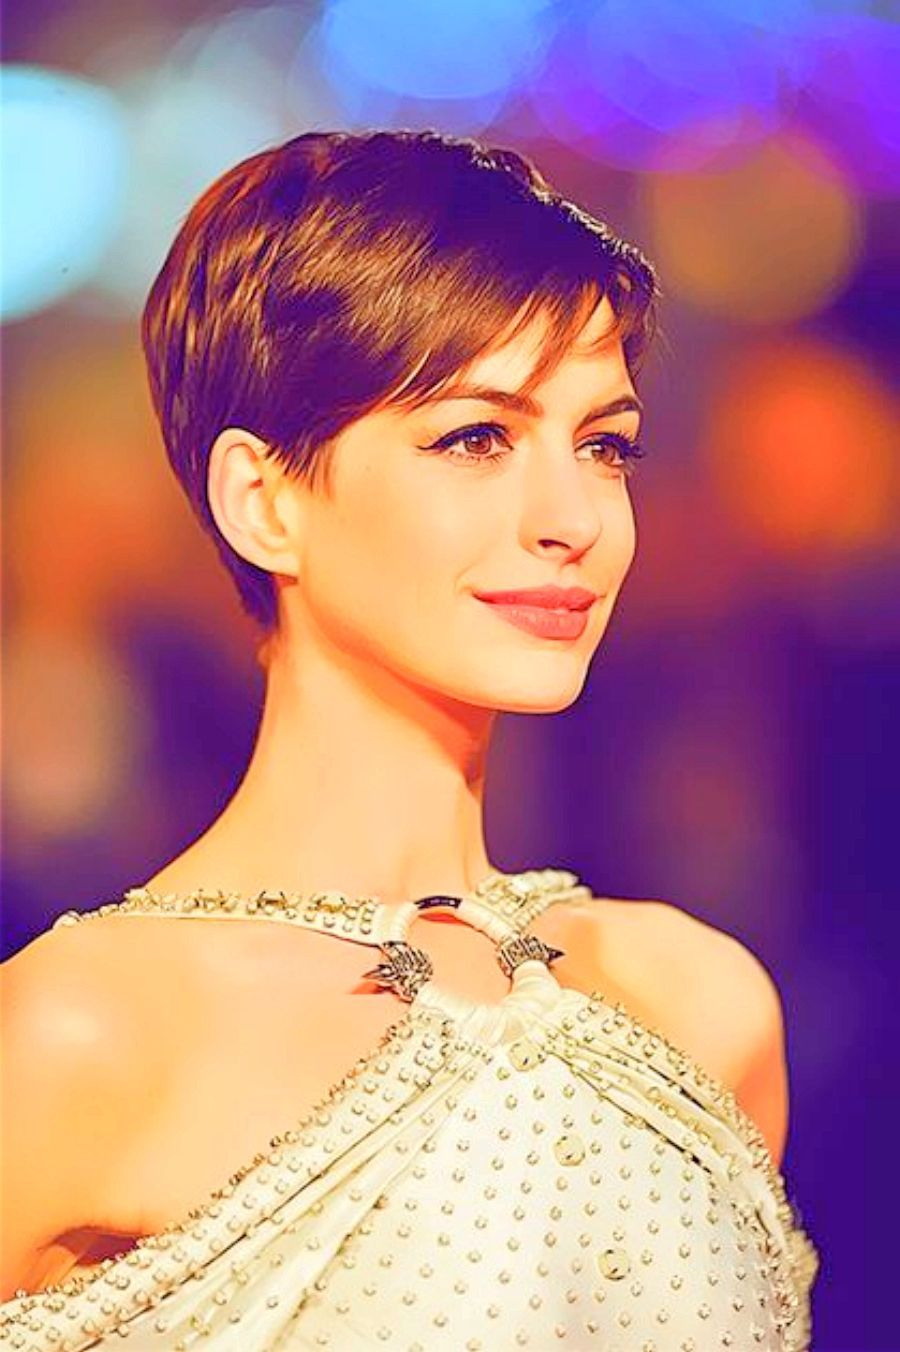 anne hathaway makeup and hair | beauty | pinterest | anne hathaway